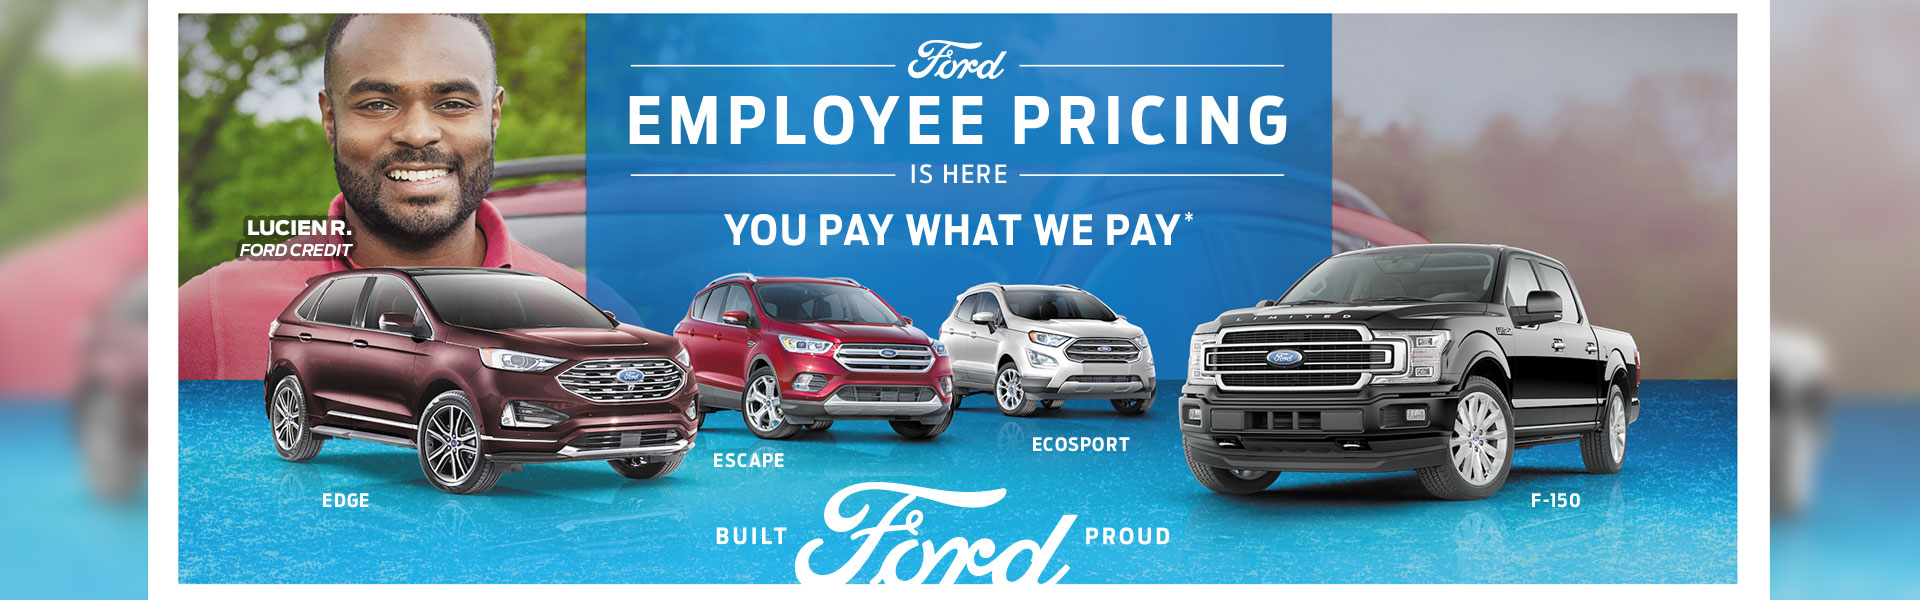 Ford Employee Pricing Sales Event